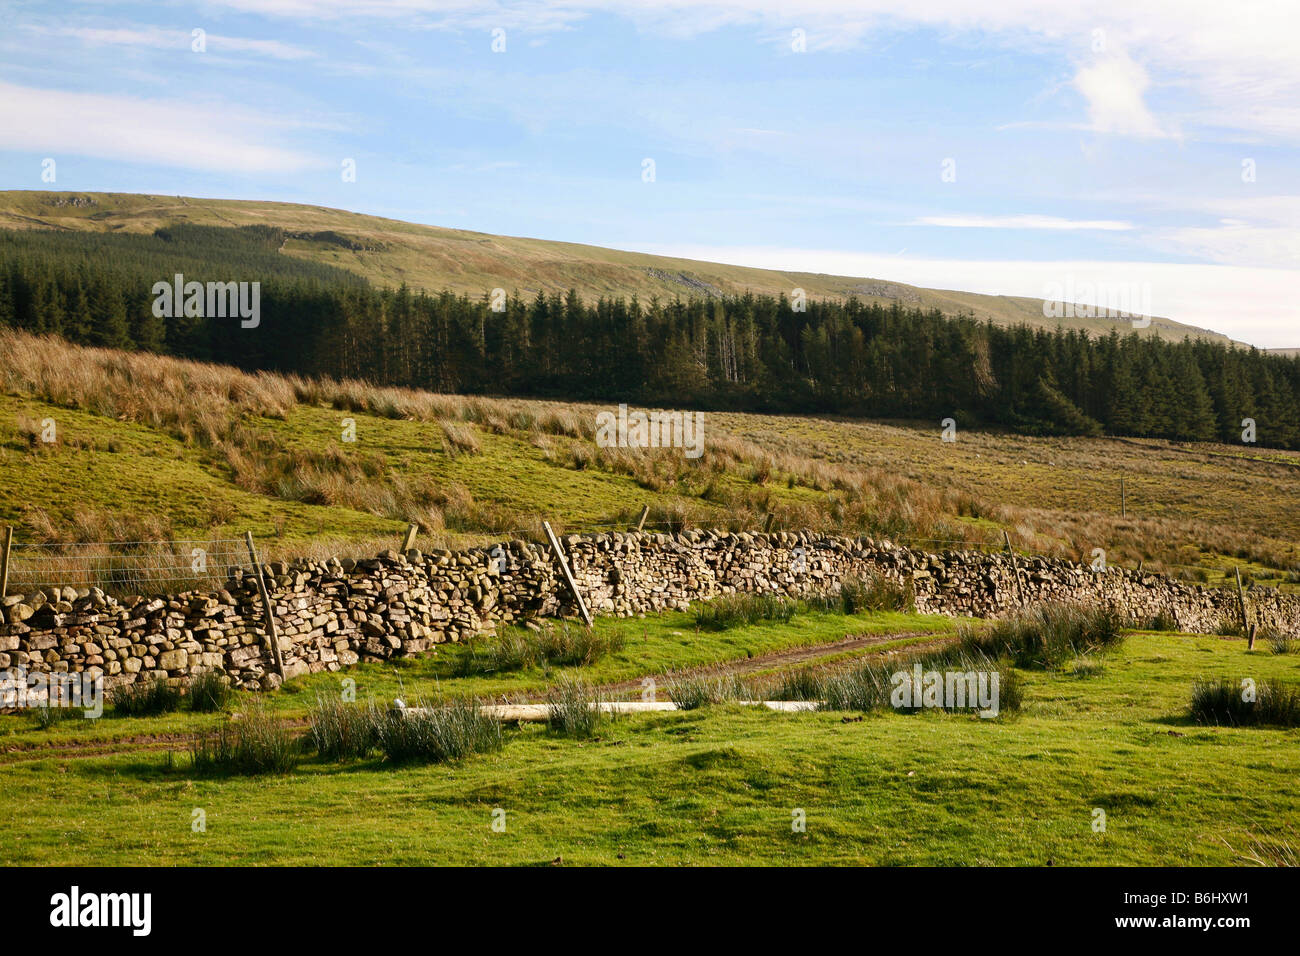 Dales scenery near the small market town of Hawes in Wensleydale, set within the Yorkshire Dales National Park Stock Photo